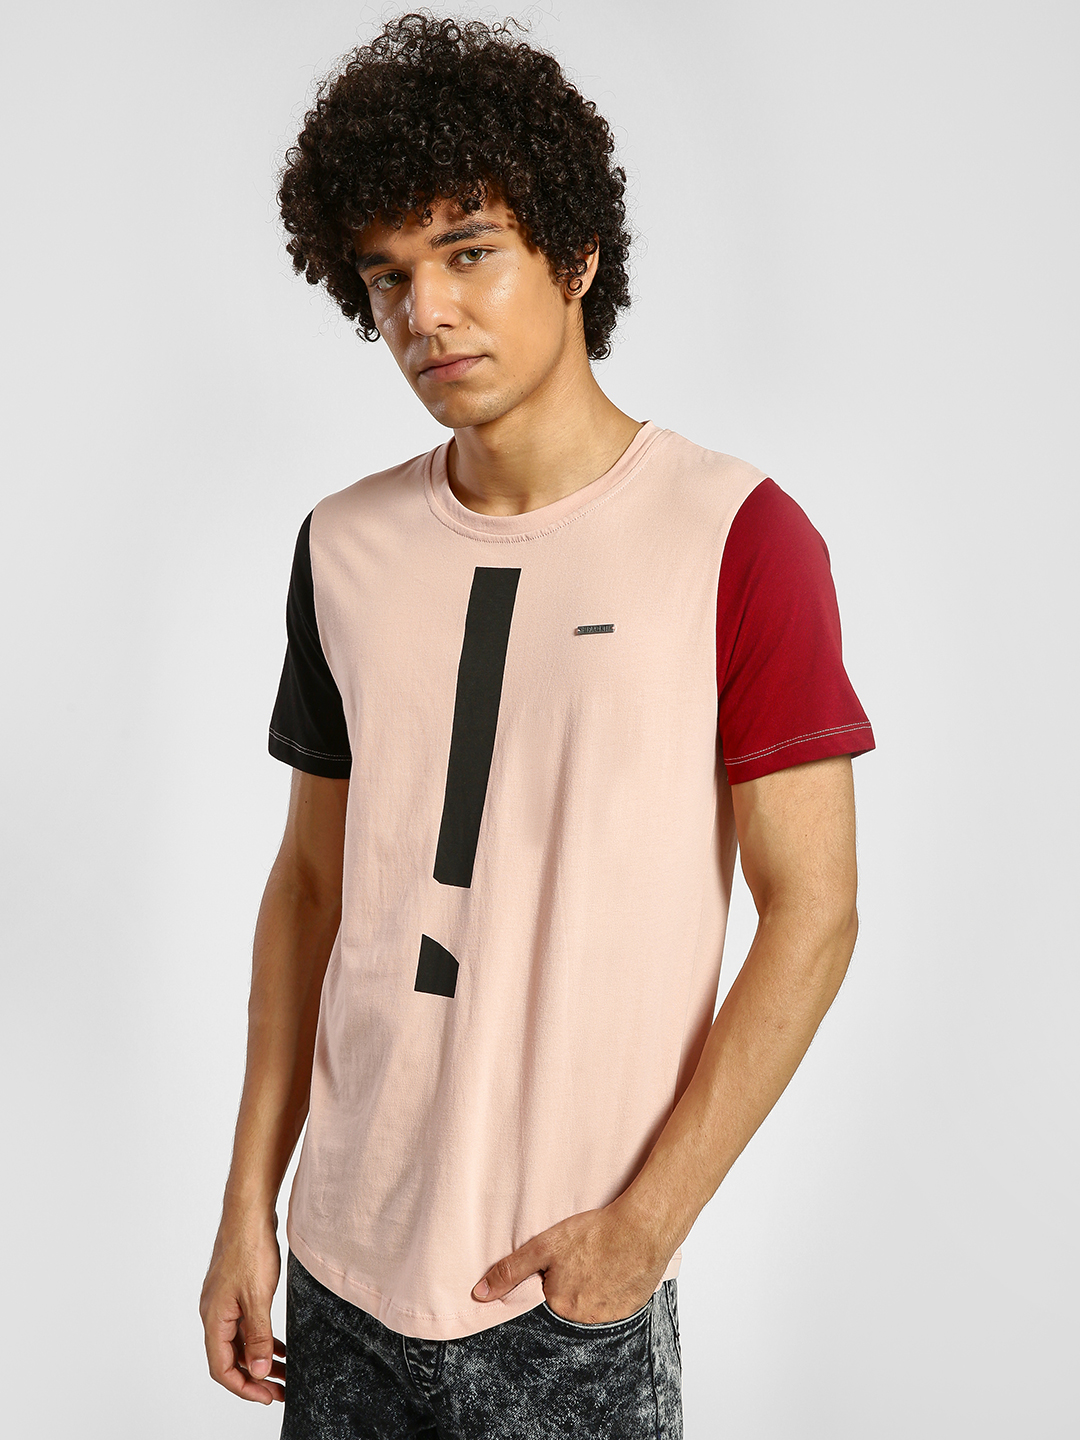 IMPACKT Multi Exclamation Mark Print Contrast Sleeve T-Shirt 1